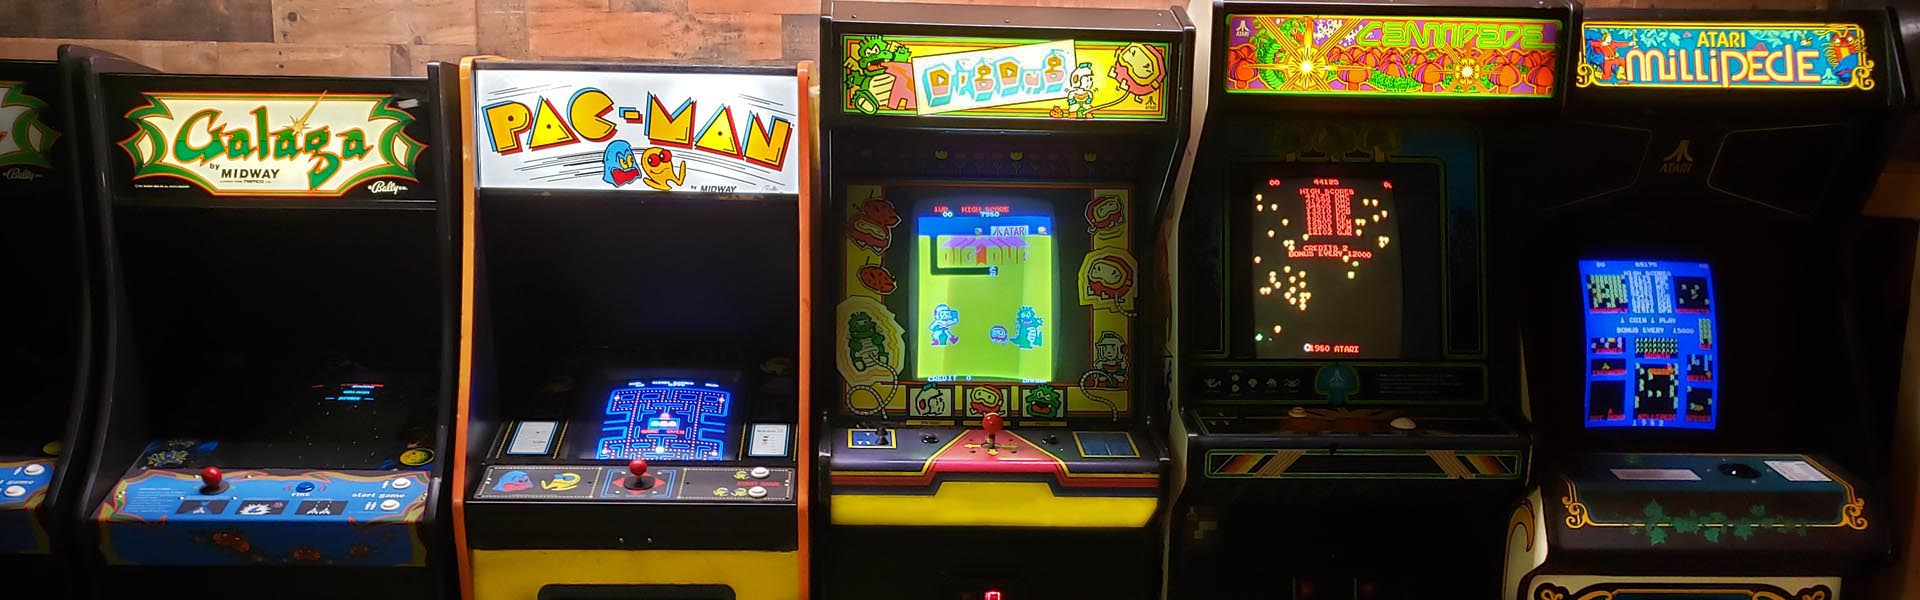 Galaga, Pac-Man, Dig Dug, Centipede, Millipede Movie Prop Rentals Arcade Games